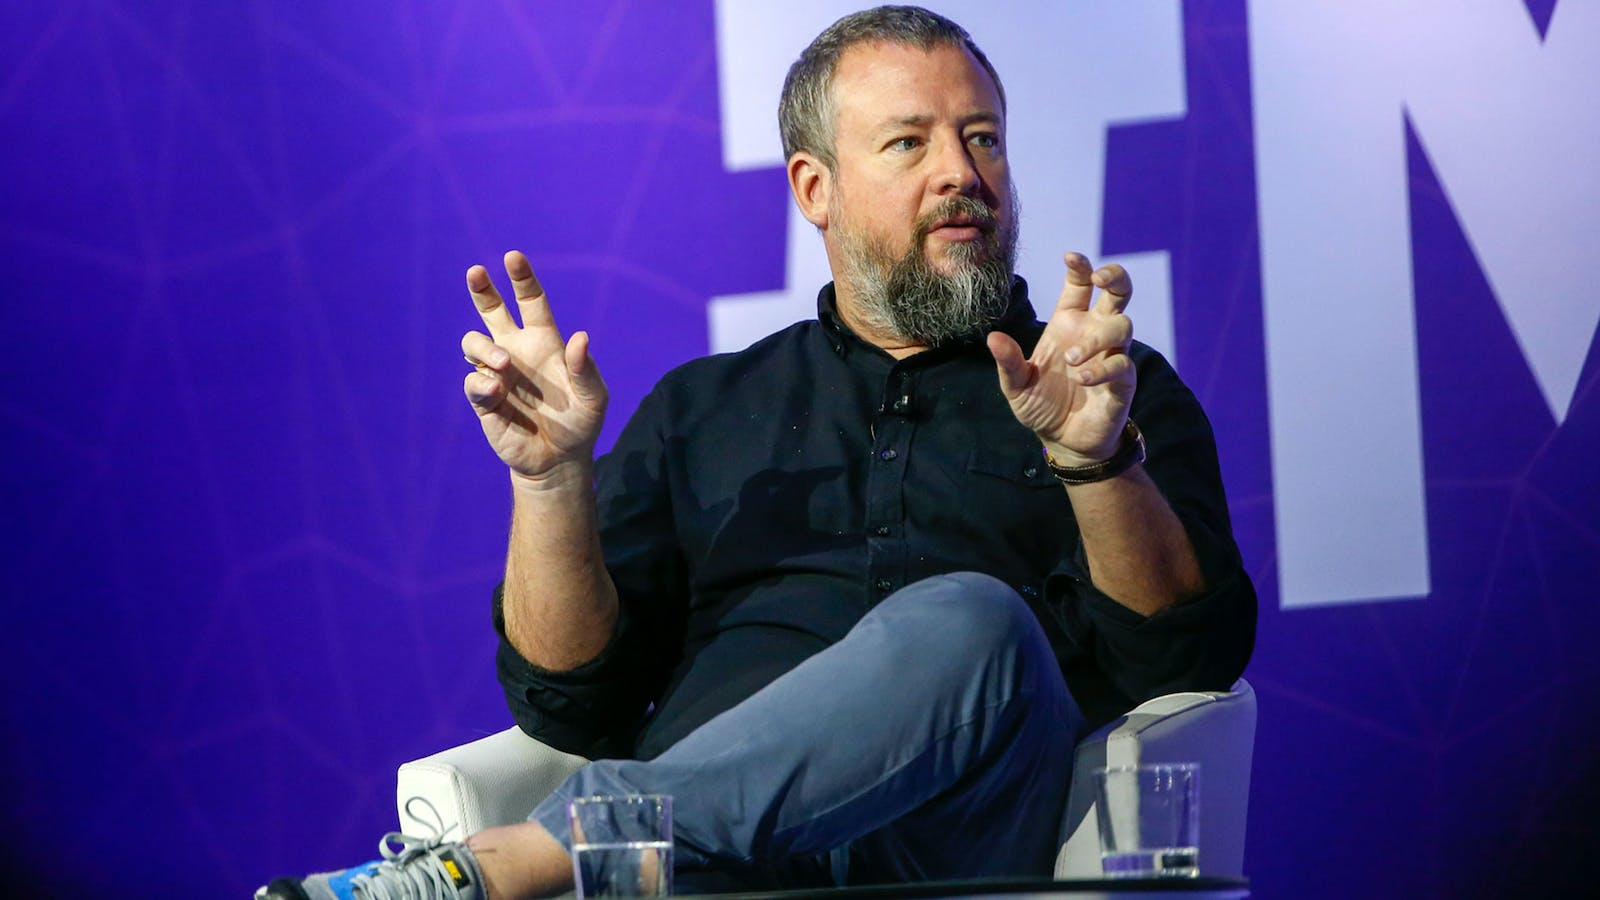 Vice cofounder Shane Smith. Photo by Bloomberg